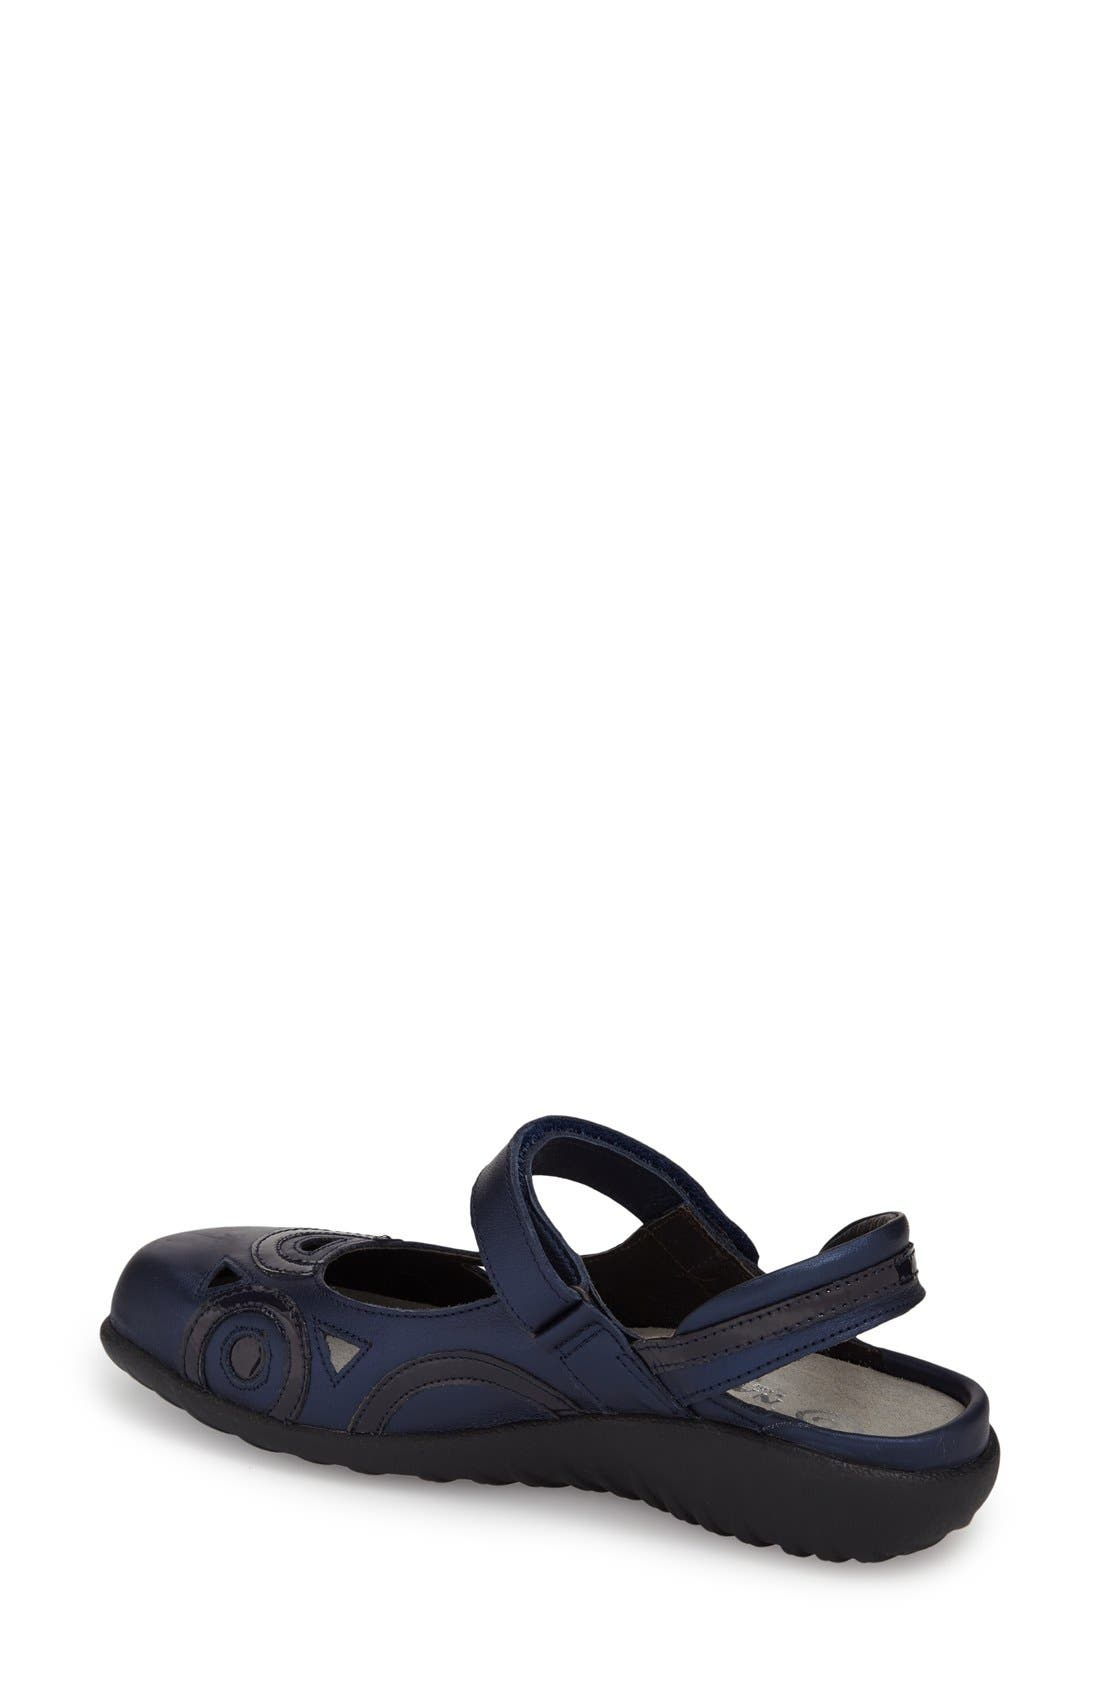 'Rongo' Slip-On,                             Alternate thumbnail 2, color,                             Navy Patent Leather Combo